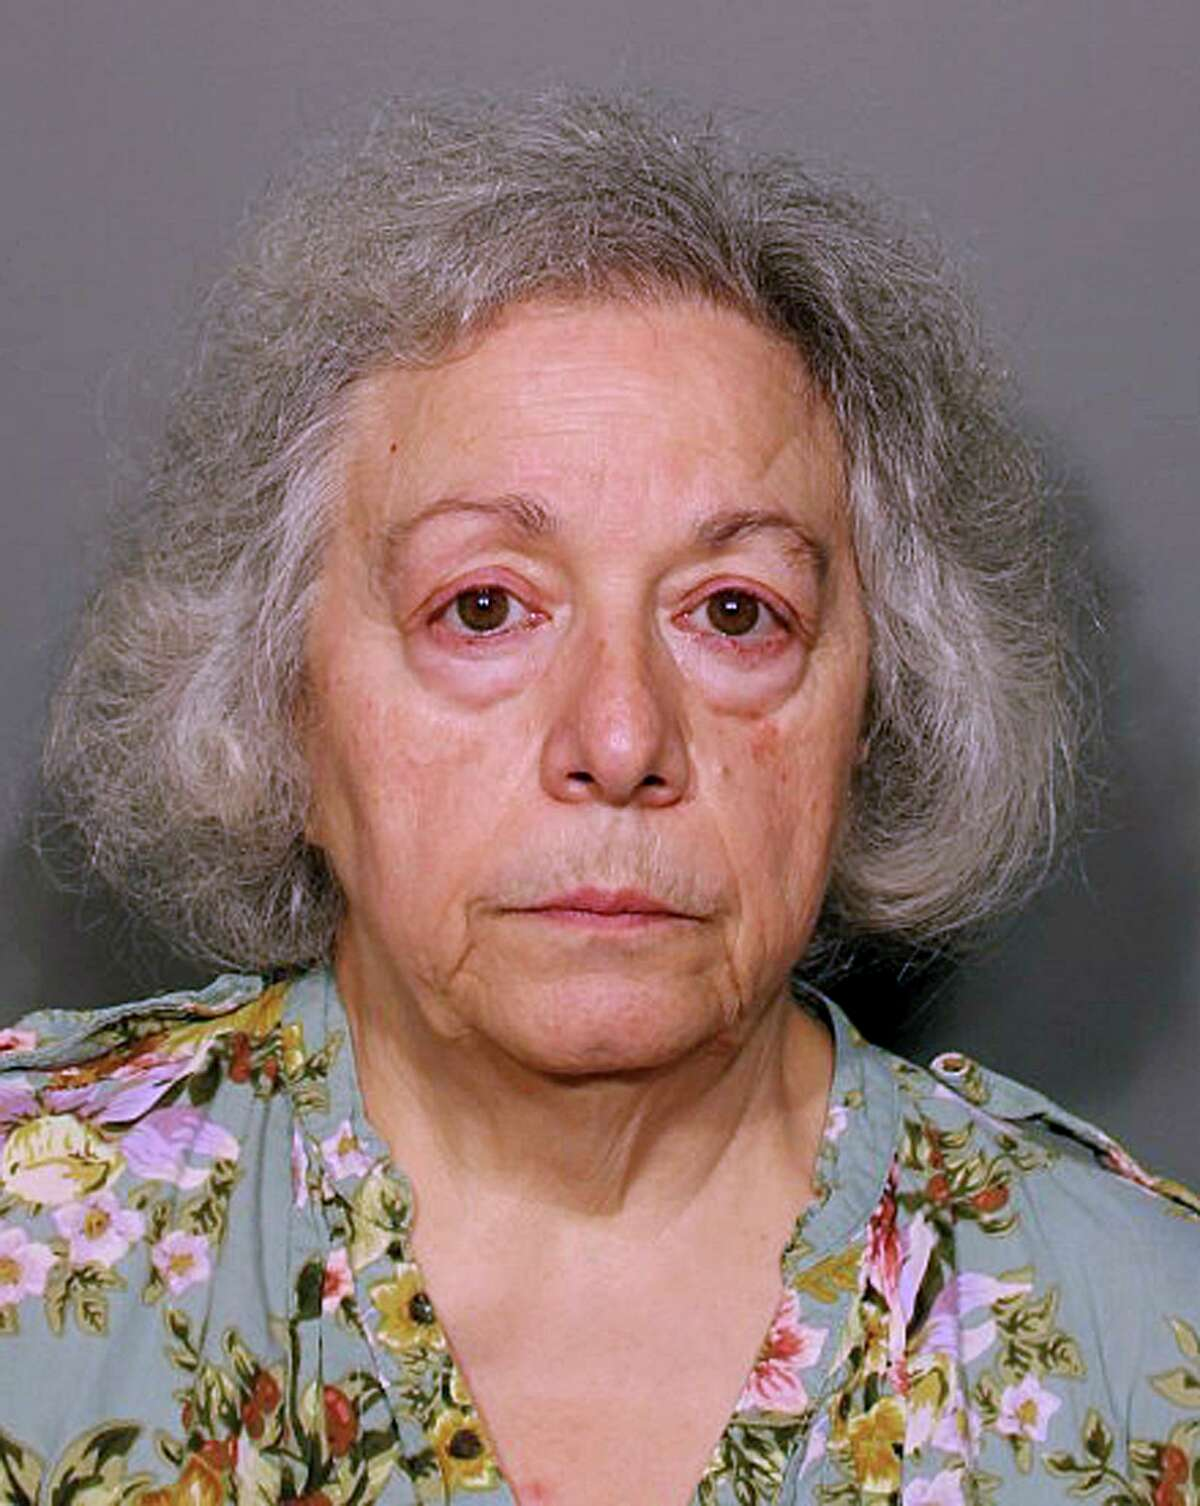 This booking photo released Monday, Aug. 13, 2018, by the New Canaan Police Department shows Marie Wilson, of Wilton, Conn., a former cafeteria worker who along with her sister Joanne Pascarelli was charged with stealing nearly a half-million dollars from New Canaan, Conn., schools over the last five years. (New Canaan Police Department via AP)